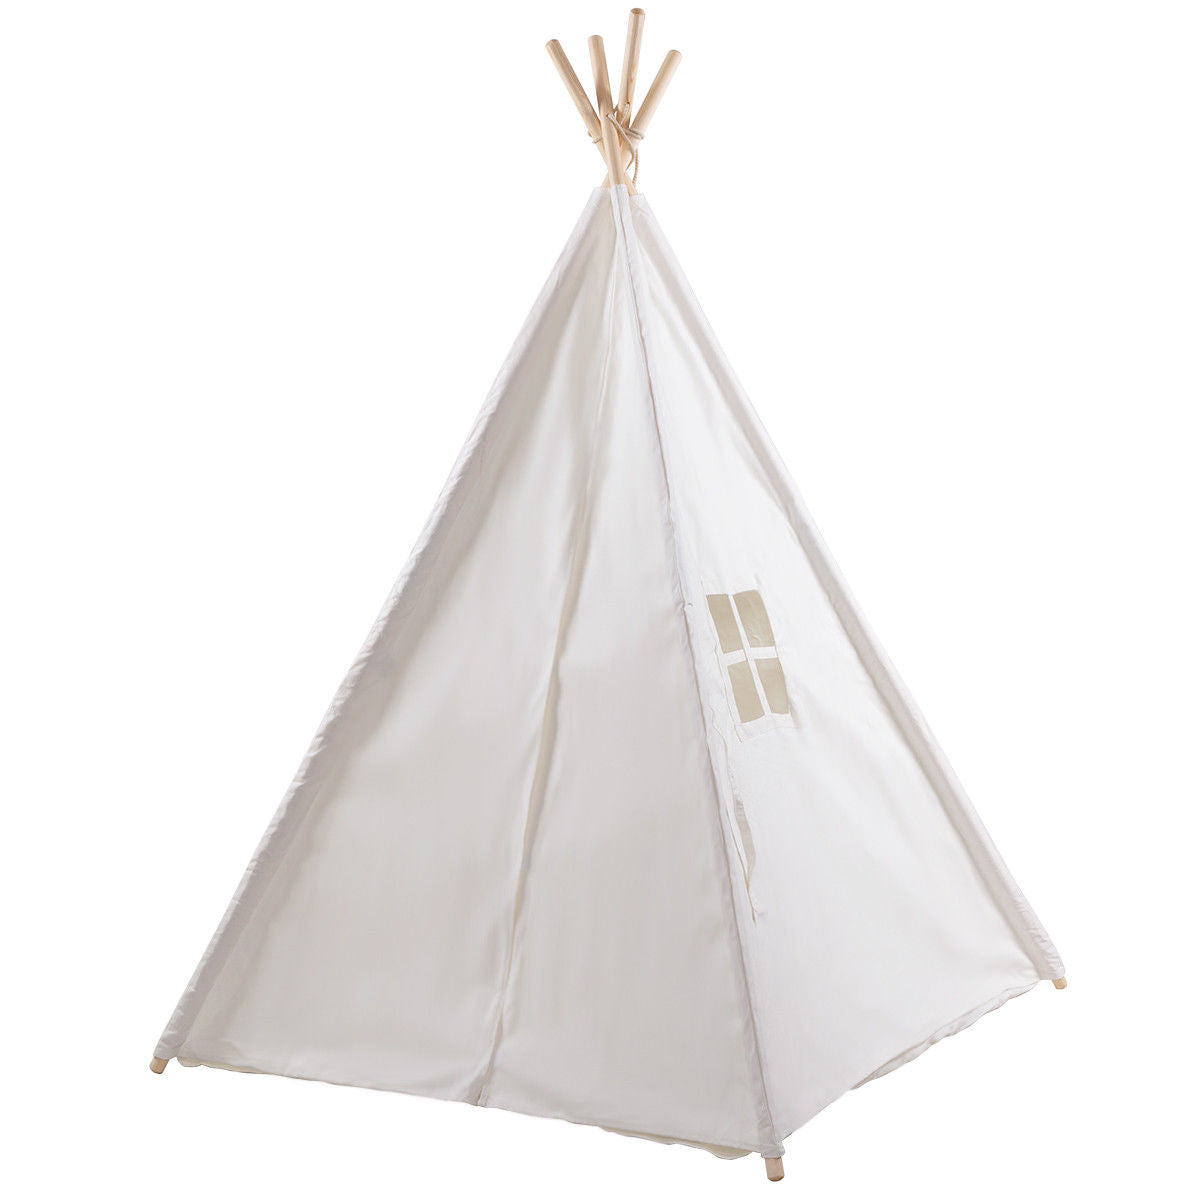 5' White Portable Indian Sleeping Dome Tent C59 - Baby World Inc